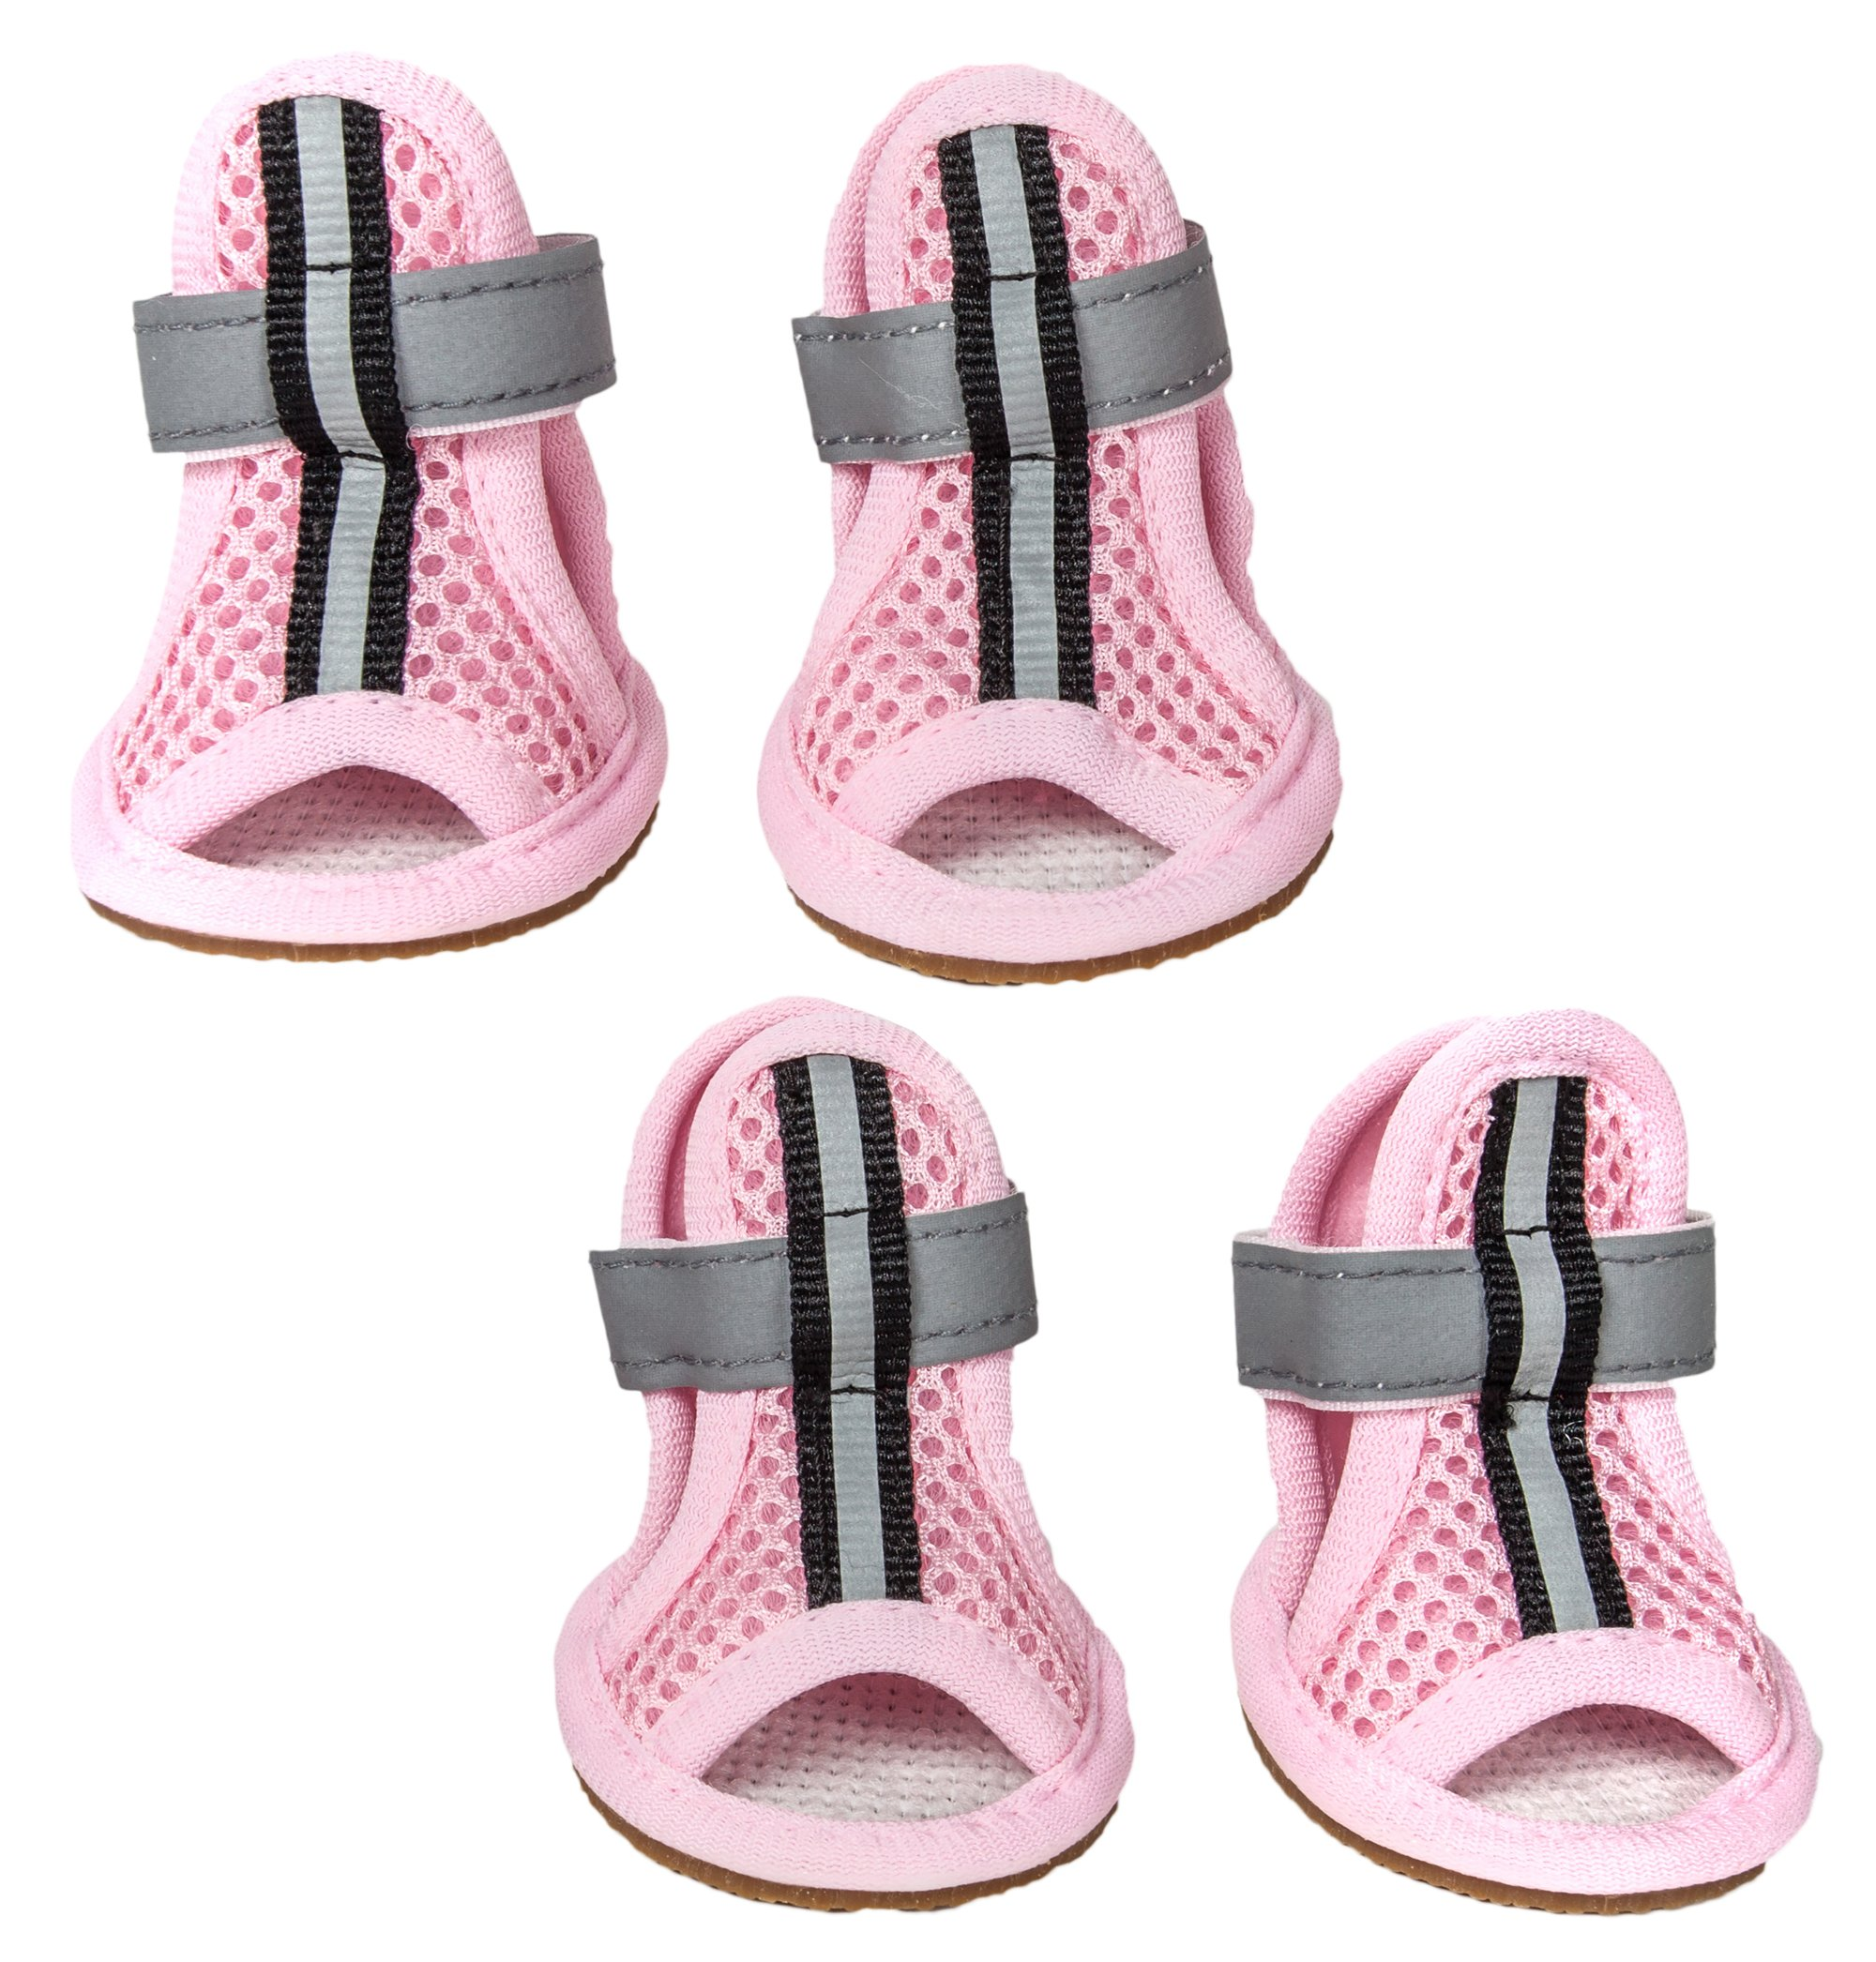 Sporty-Supportive Mesh Pet Sandals Shoes - Set Of 4